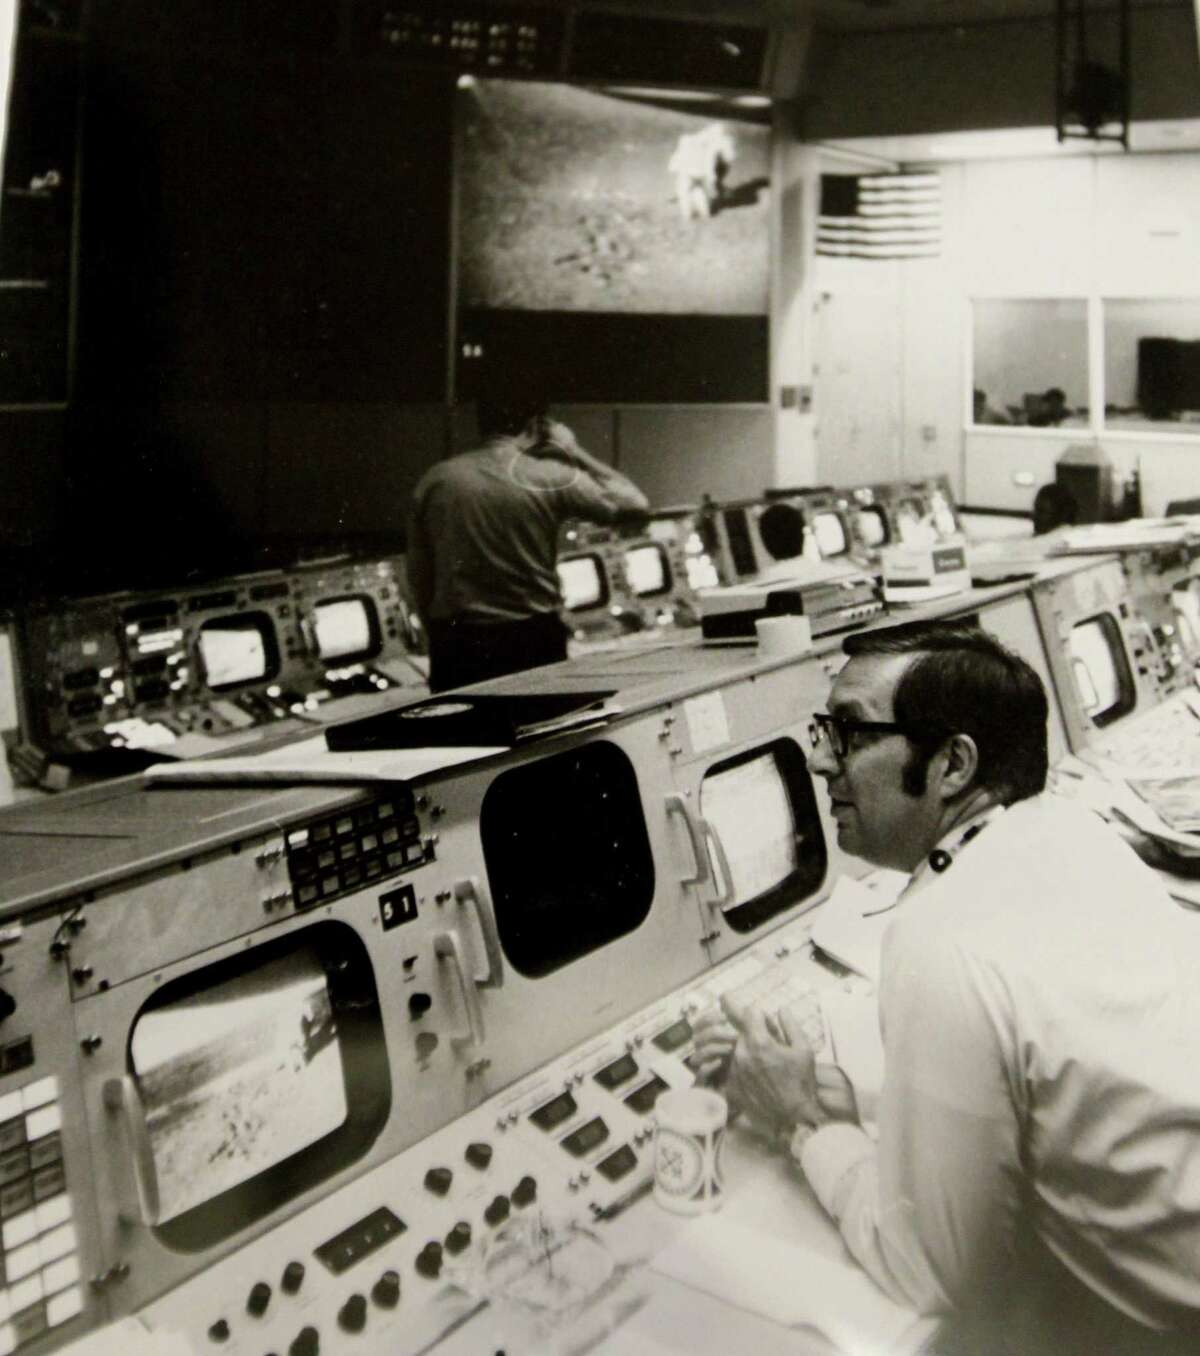 This undated photo, part of of Moody Medical Library's Charles A. Berry, M.D. Space Medicine Collection in Galveston, Texas, shows Dr. Charles A. Berry in Mission Control at NASA in Houston. (Moody Medical Library's Charles A. Berry, M.D. Space Medicine Collection/The Galveston County Daily News via AP)